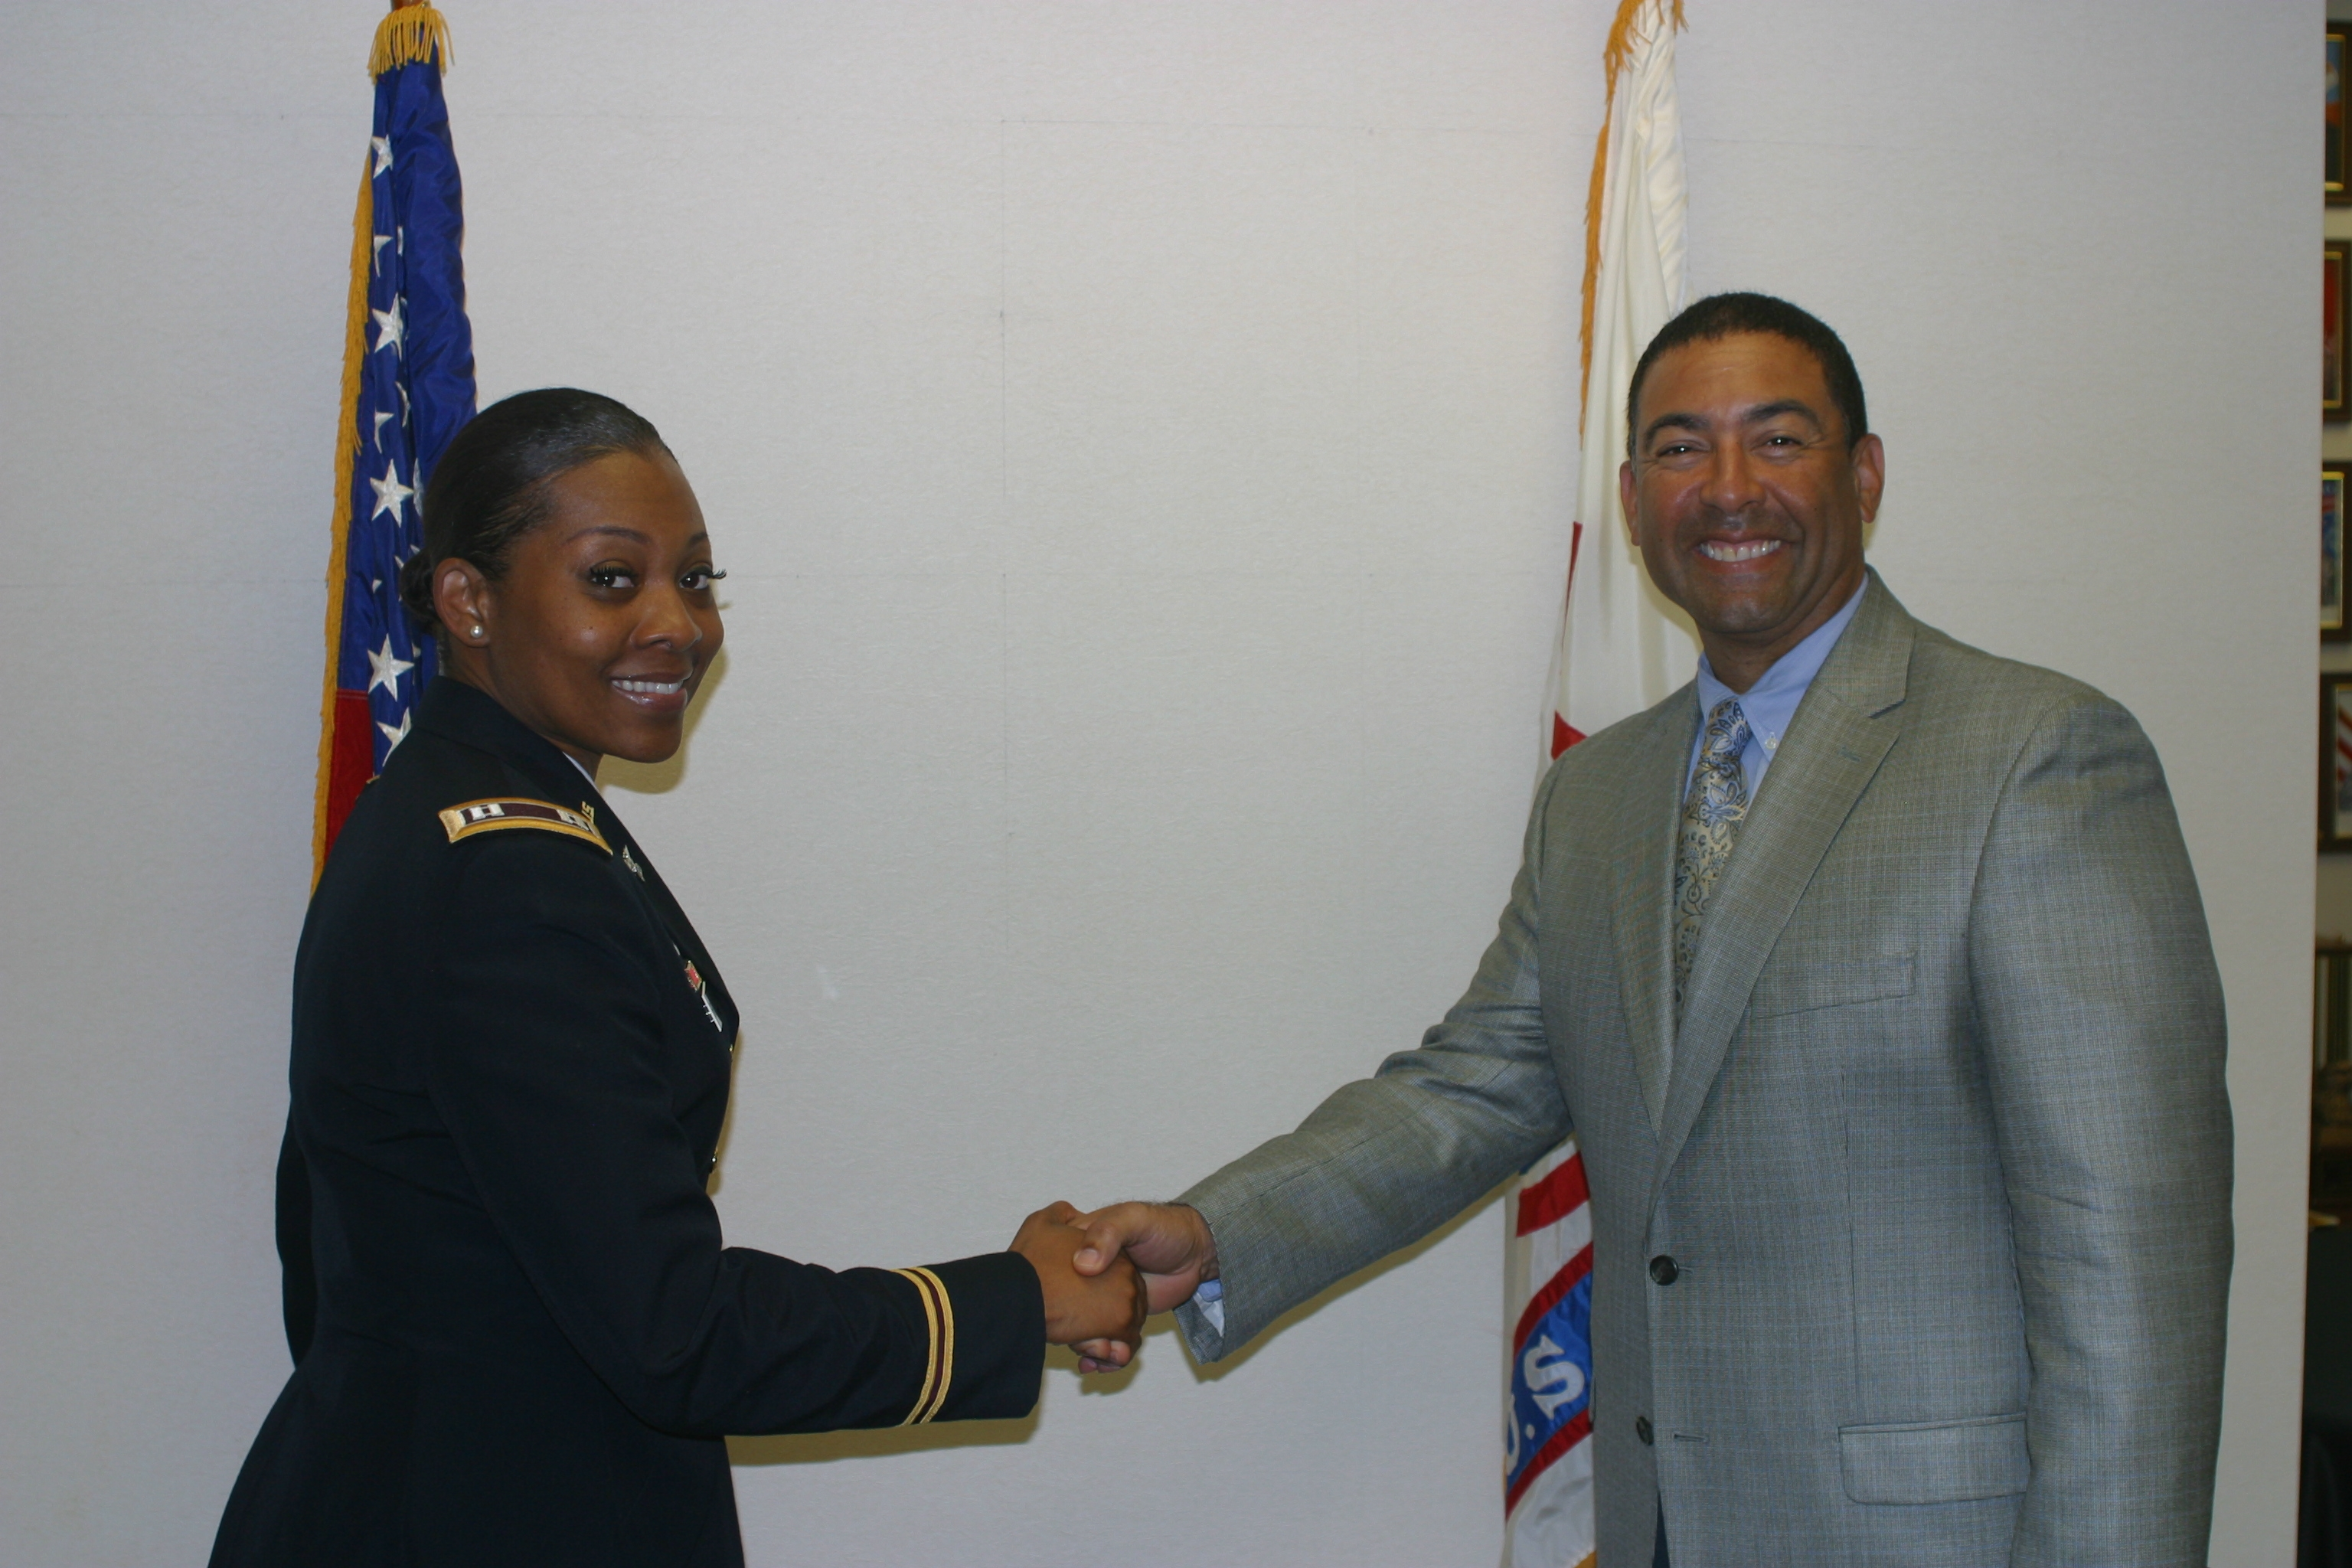 Congratulations after Dr. Jose Peralta has been sworn in as Captain in the U.S. Army Reserves Medical Support Unit.